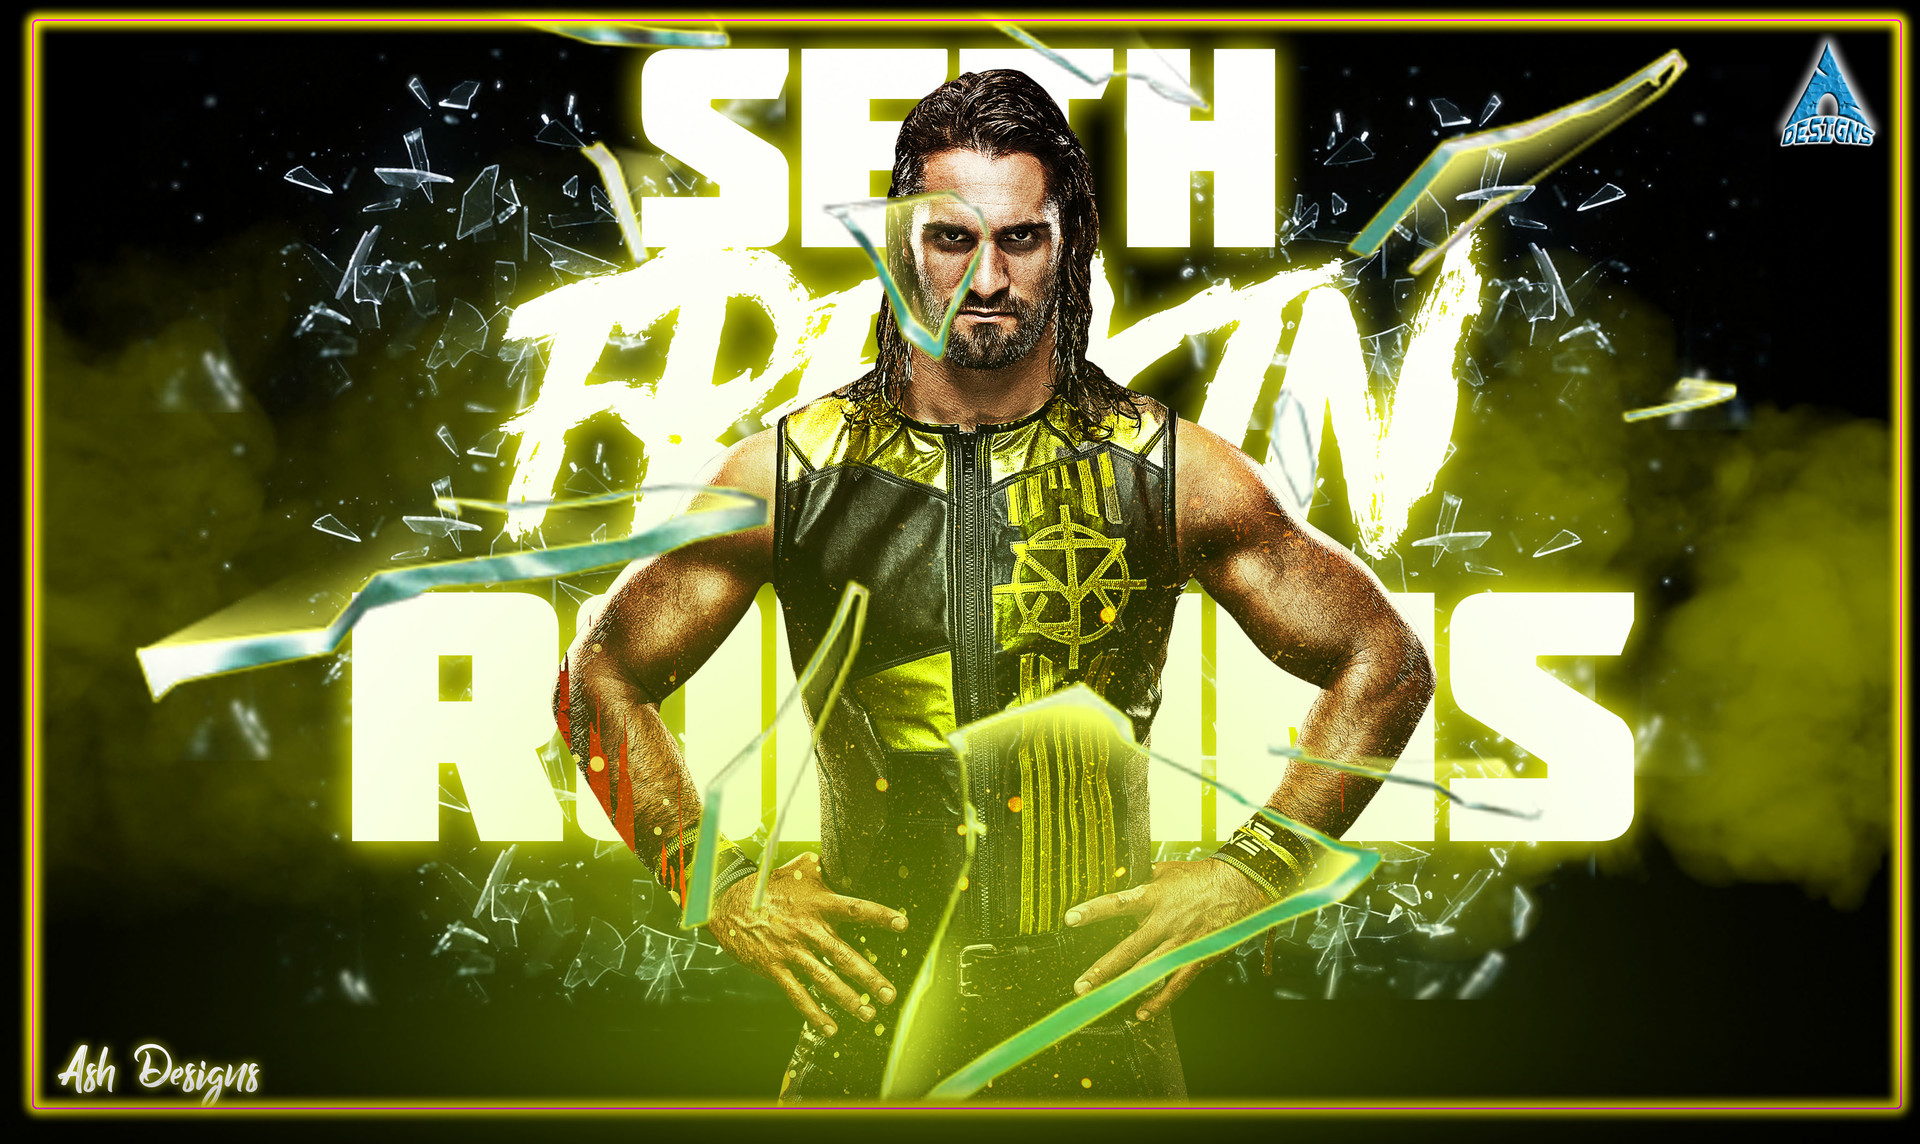 ArtStation - Seth Rollins Wallpaper